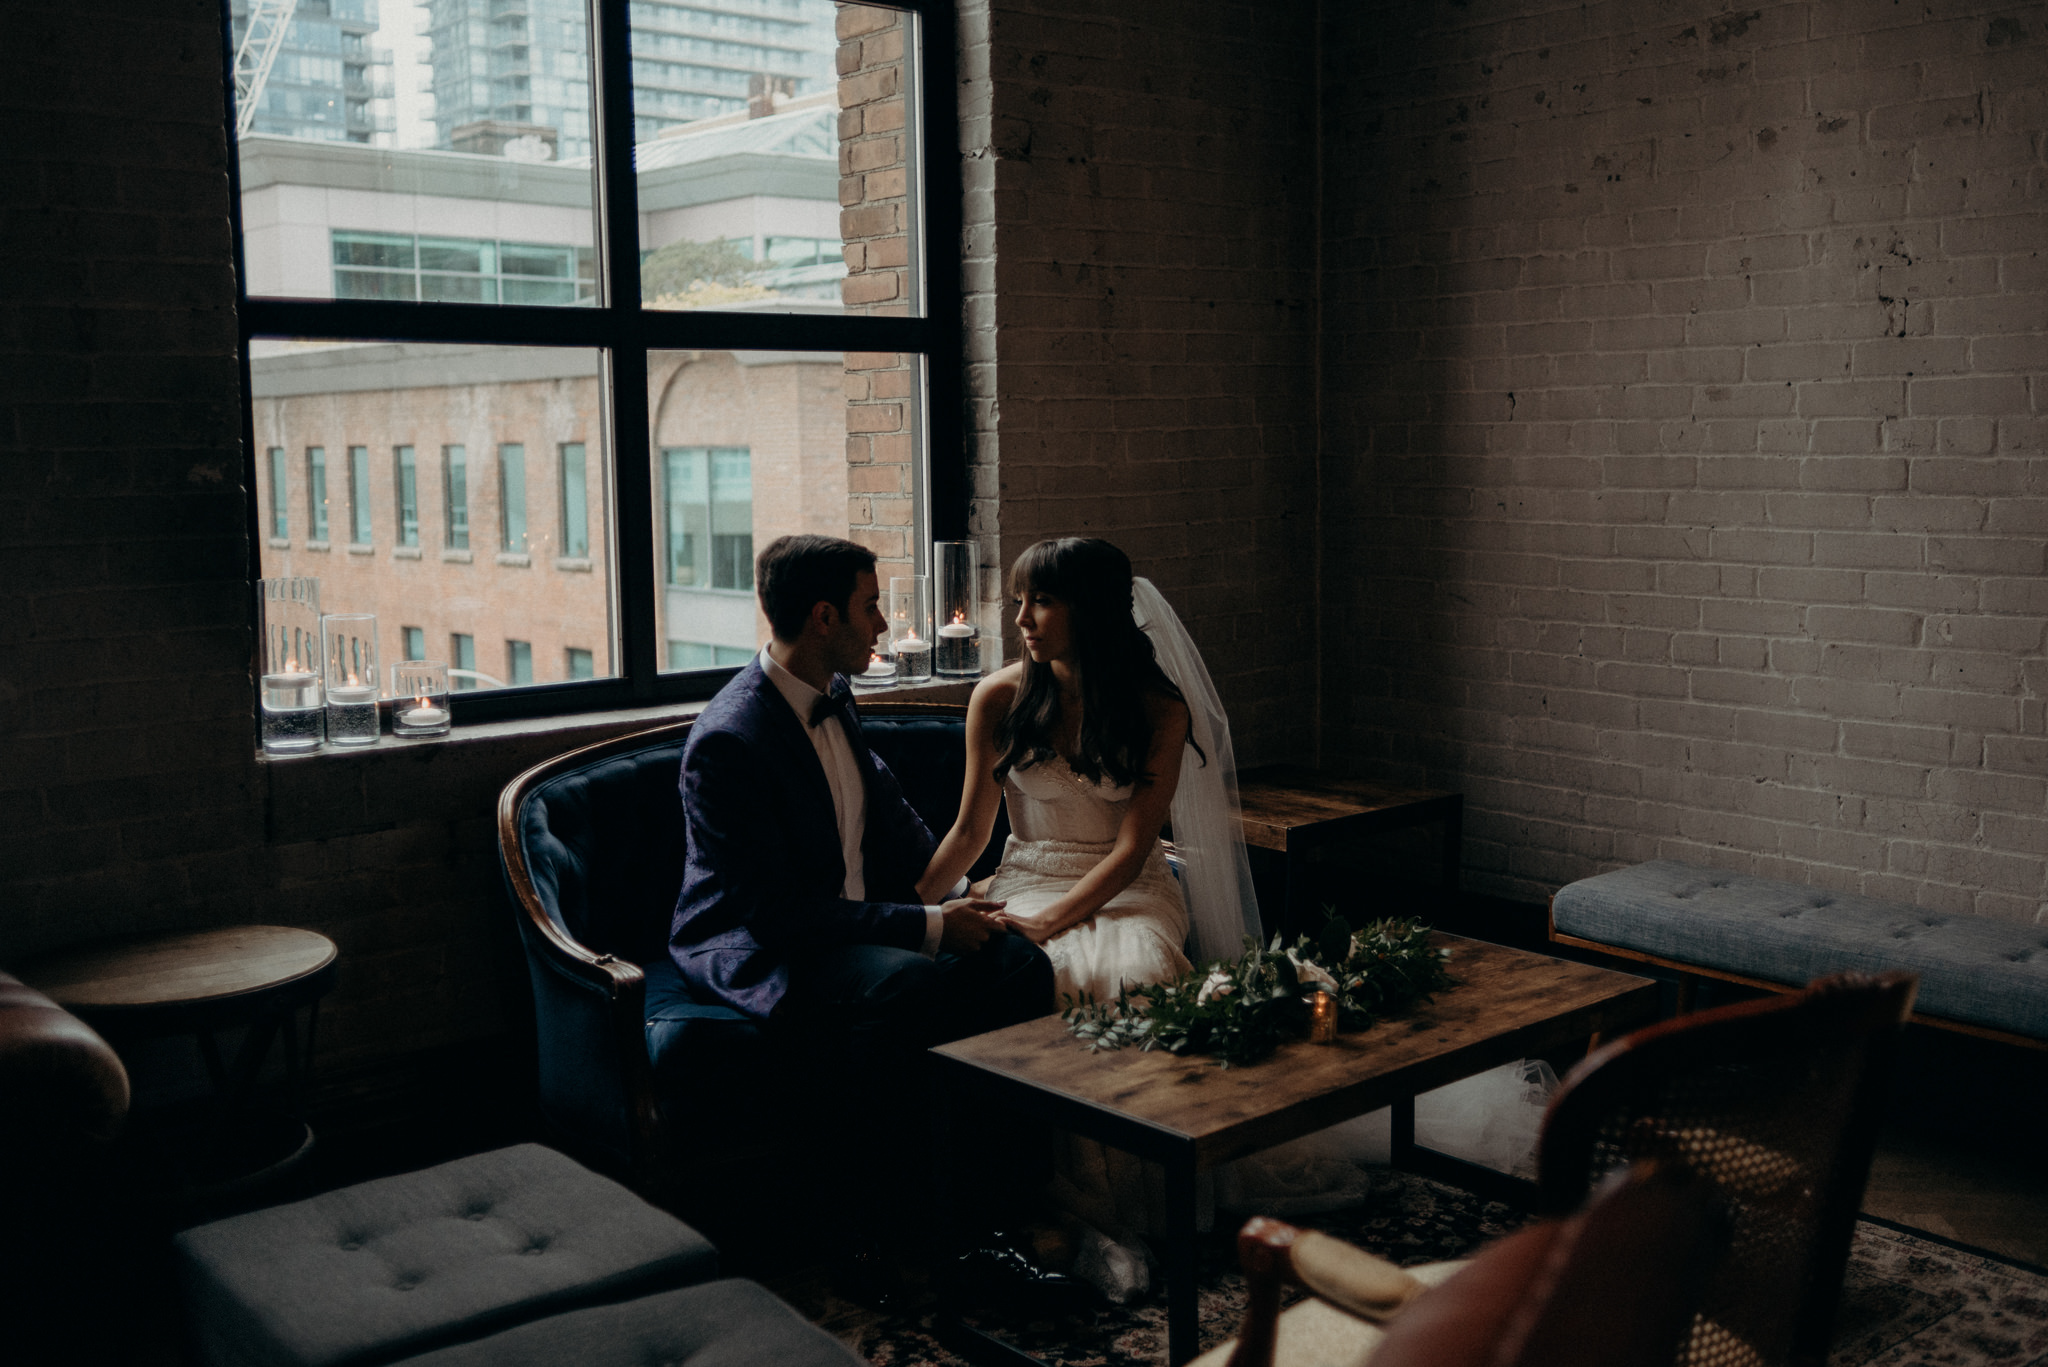 Romantic Storys Building wedding portraits